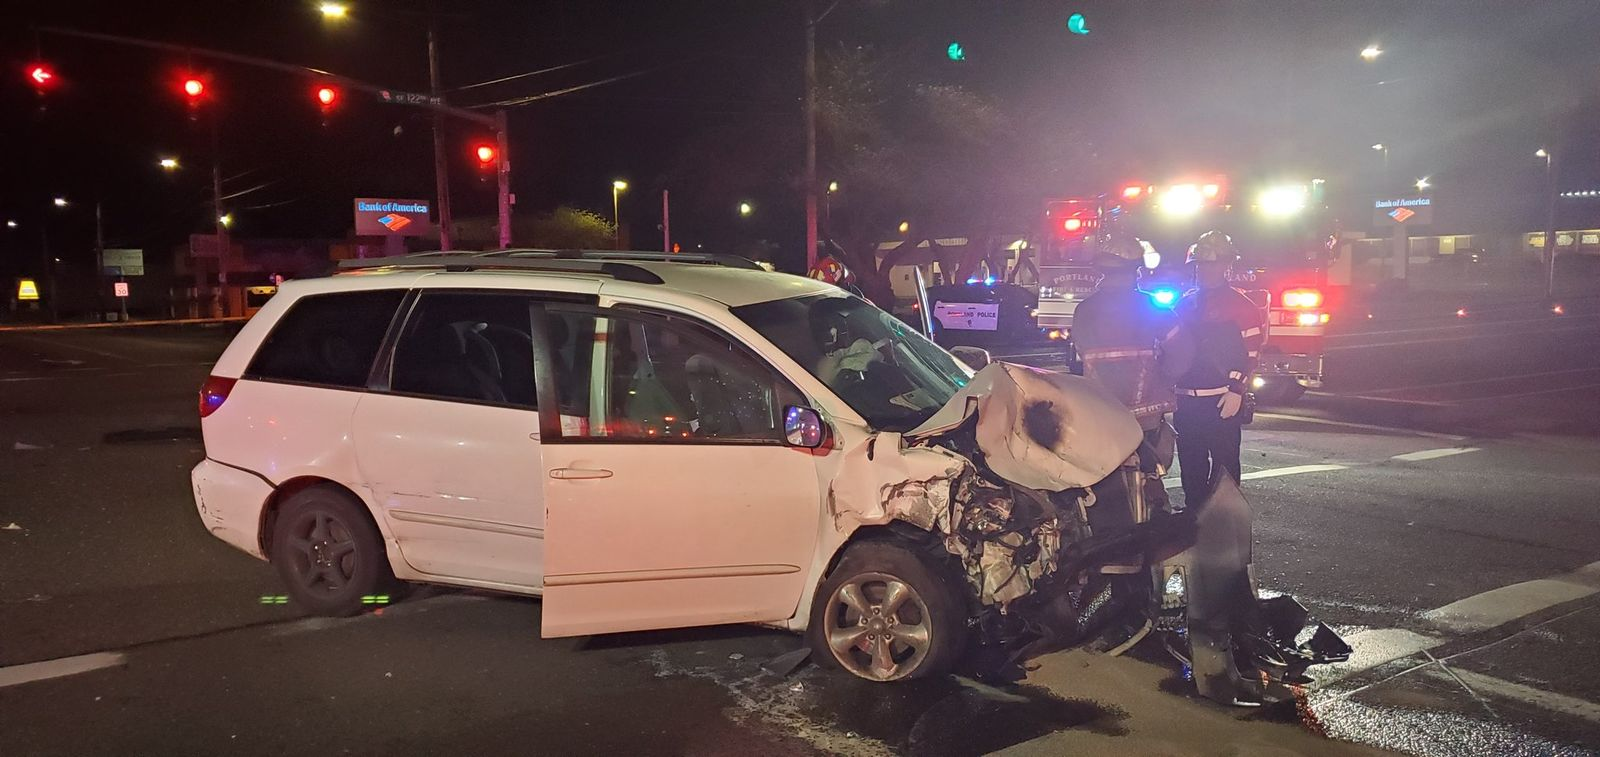 Police say three people were seriously injured in a crash in Southeast Portland on April 23, 2019. Photo courtesy Portland Police Bureau